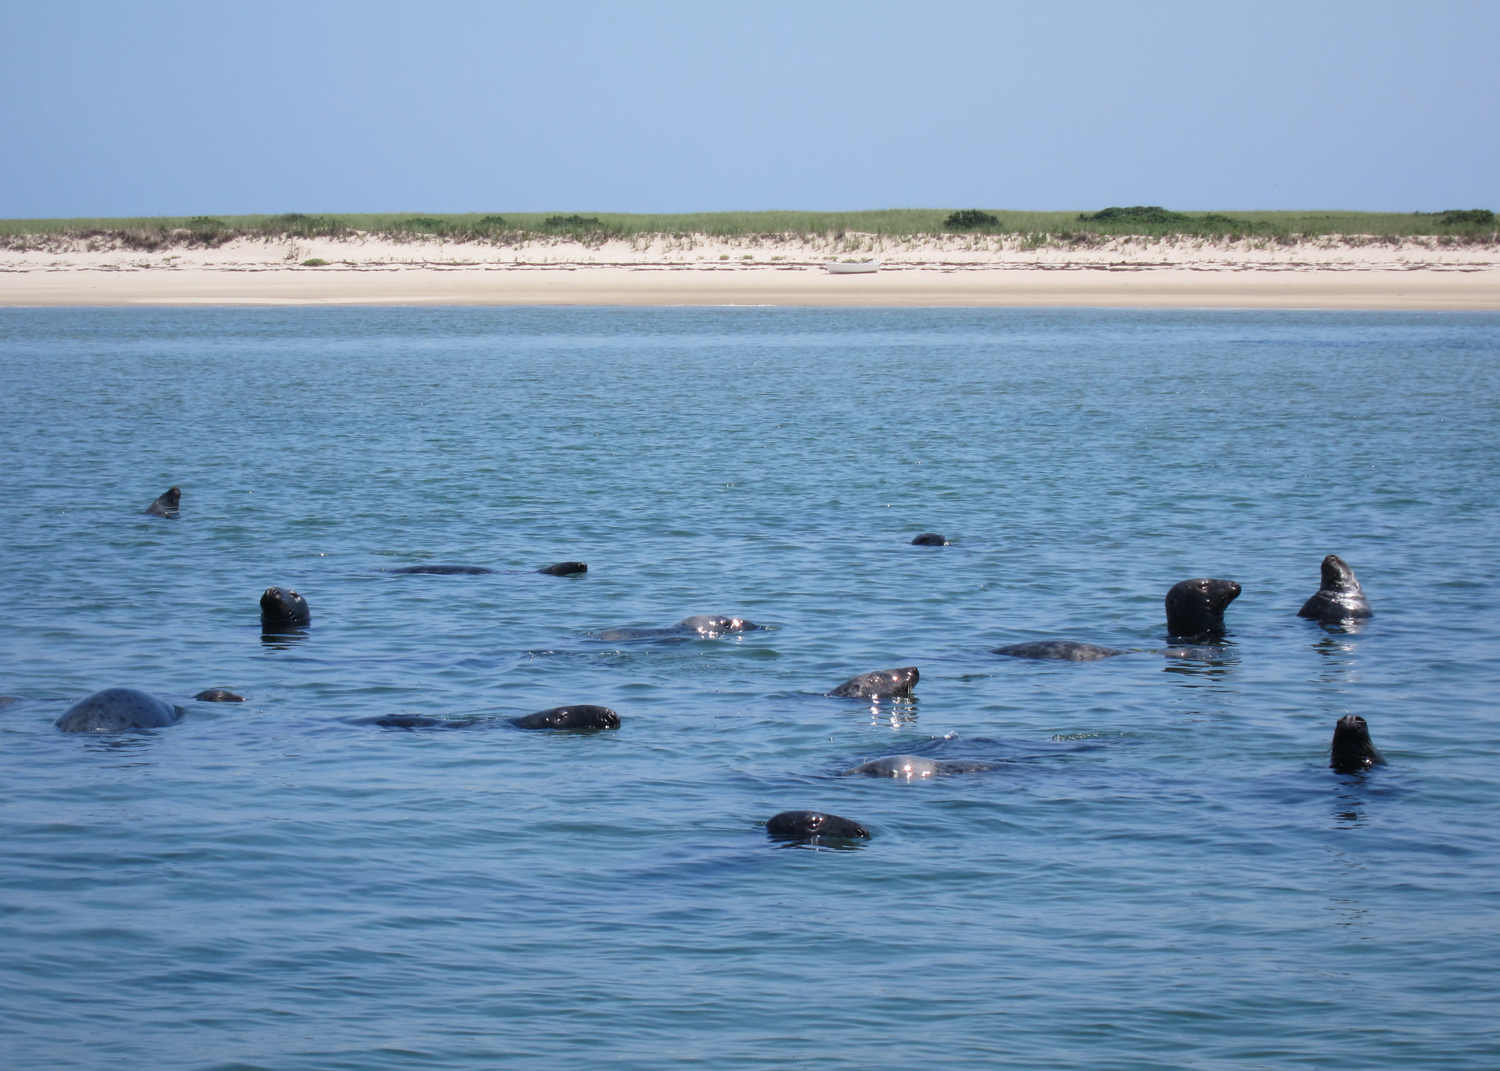 Over the years, the seal population in the waters off Cape Cod has increased dramatically, thus attracting some of the Cape's most notorious visitors - sharks!